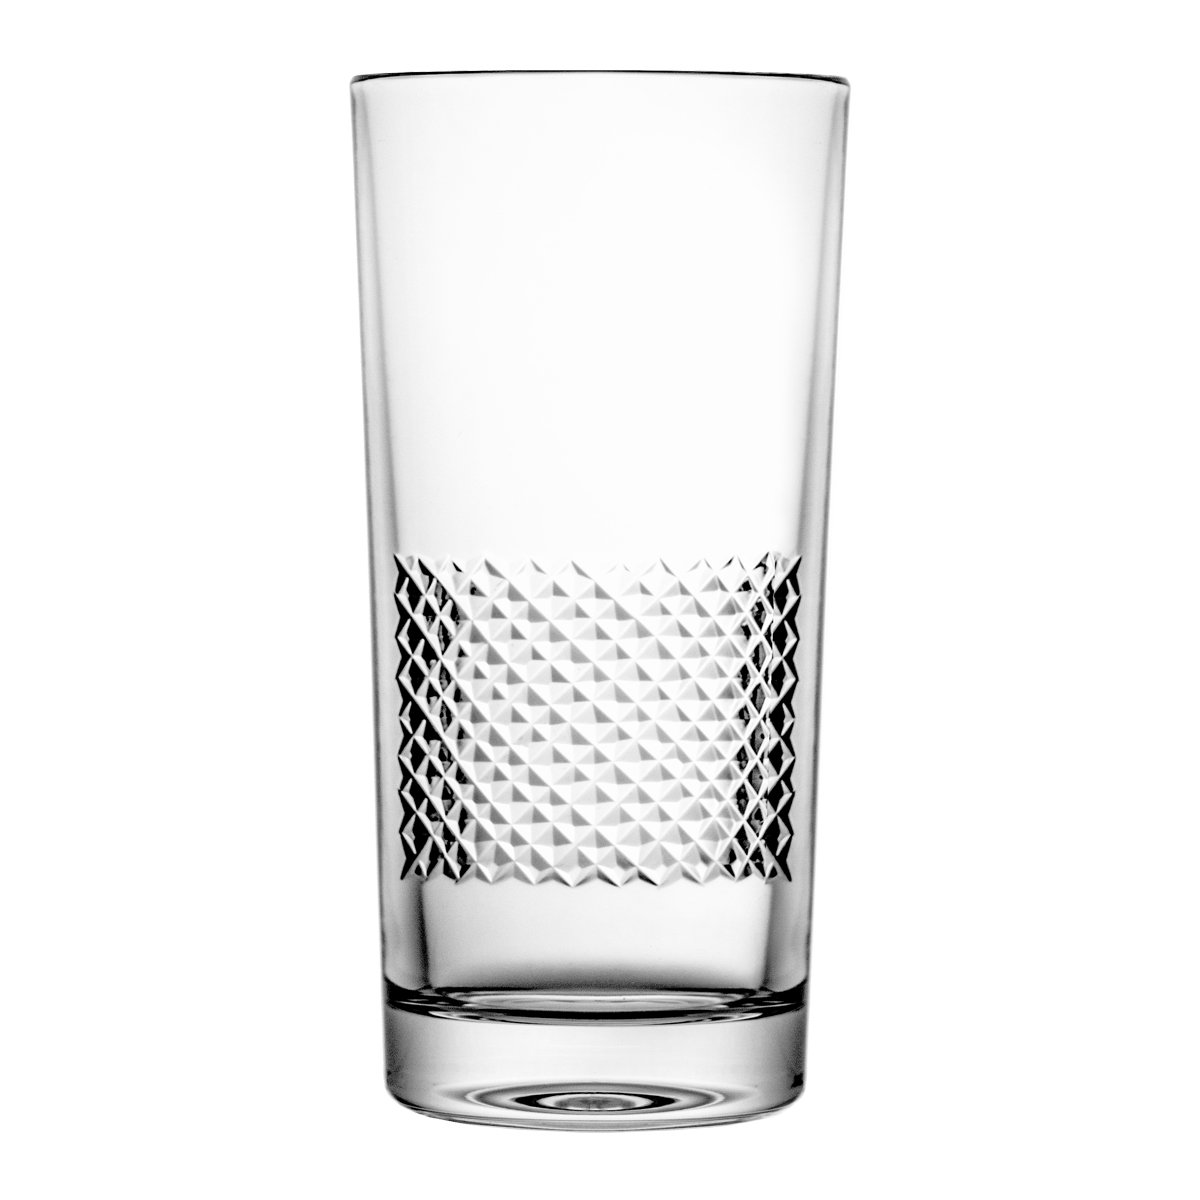 Pack of Aljulia 14339Water Glass, Crystal, 200ml, 6x 11.5cm 6Units by Crystal Julia